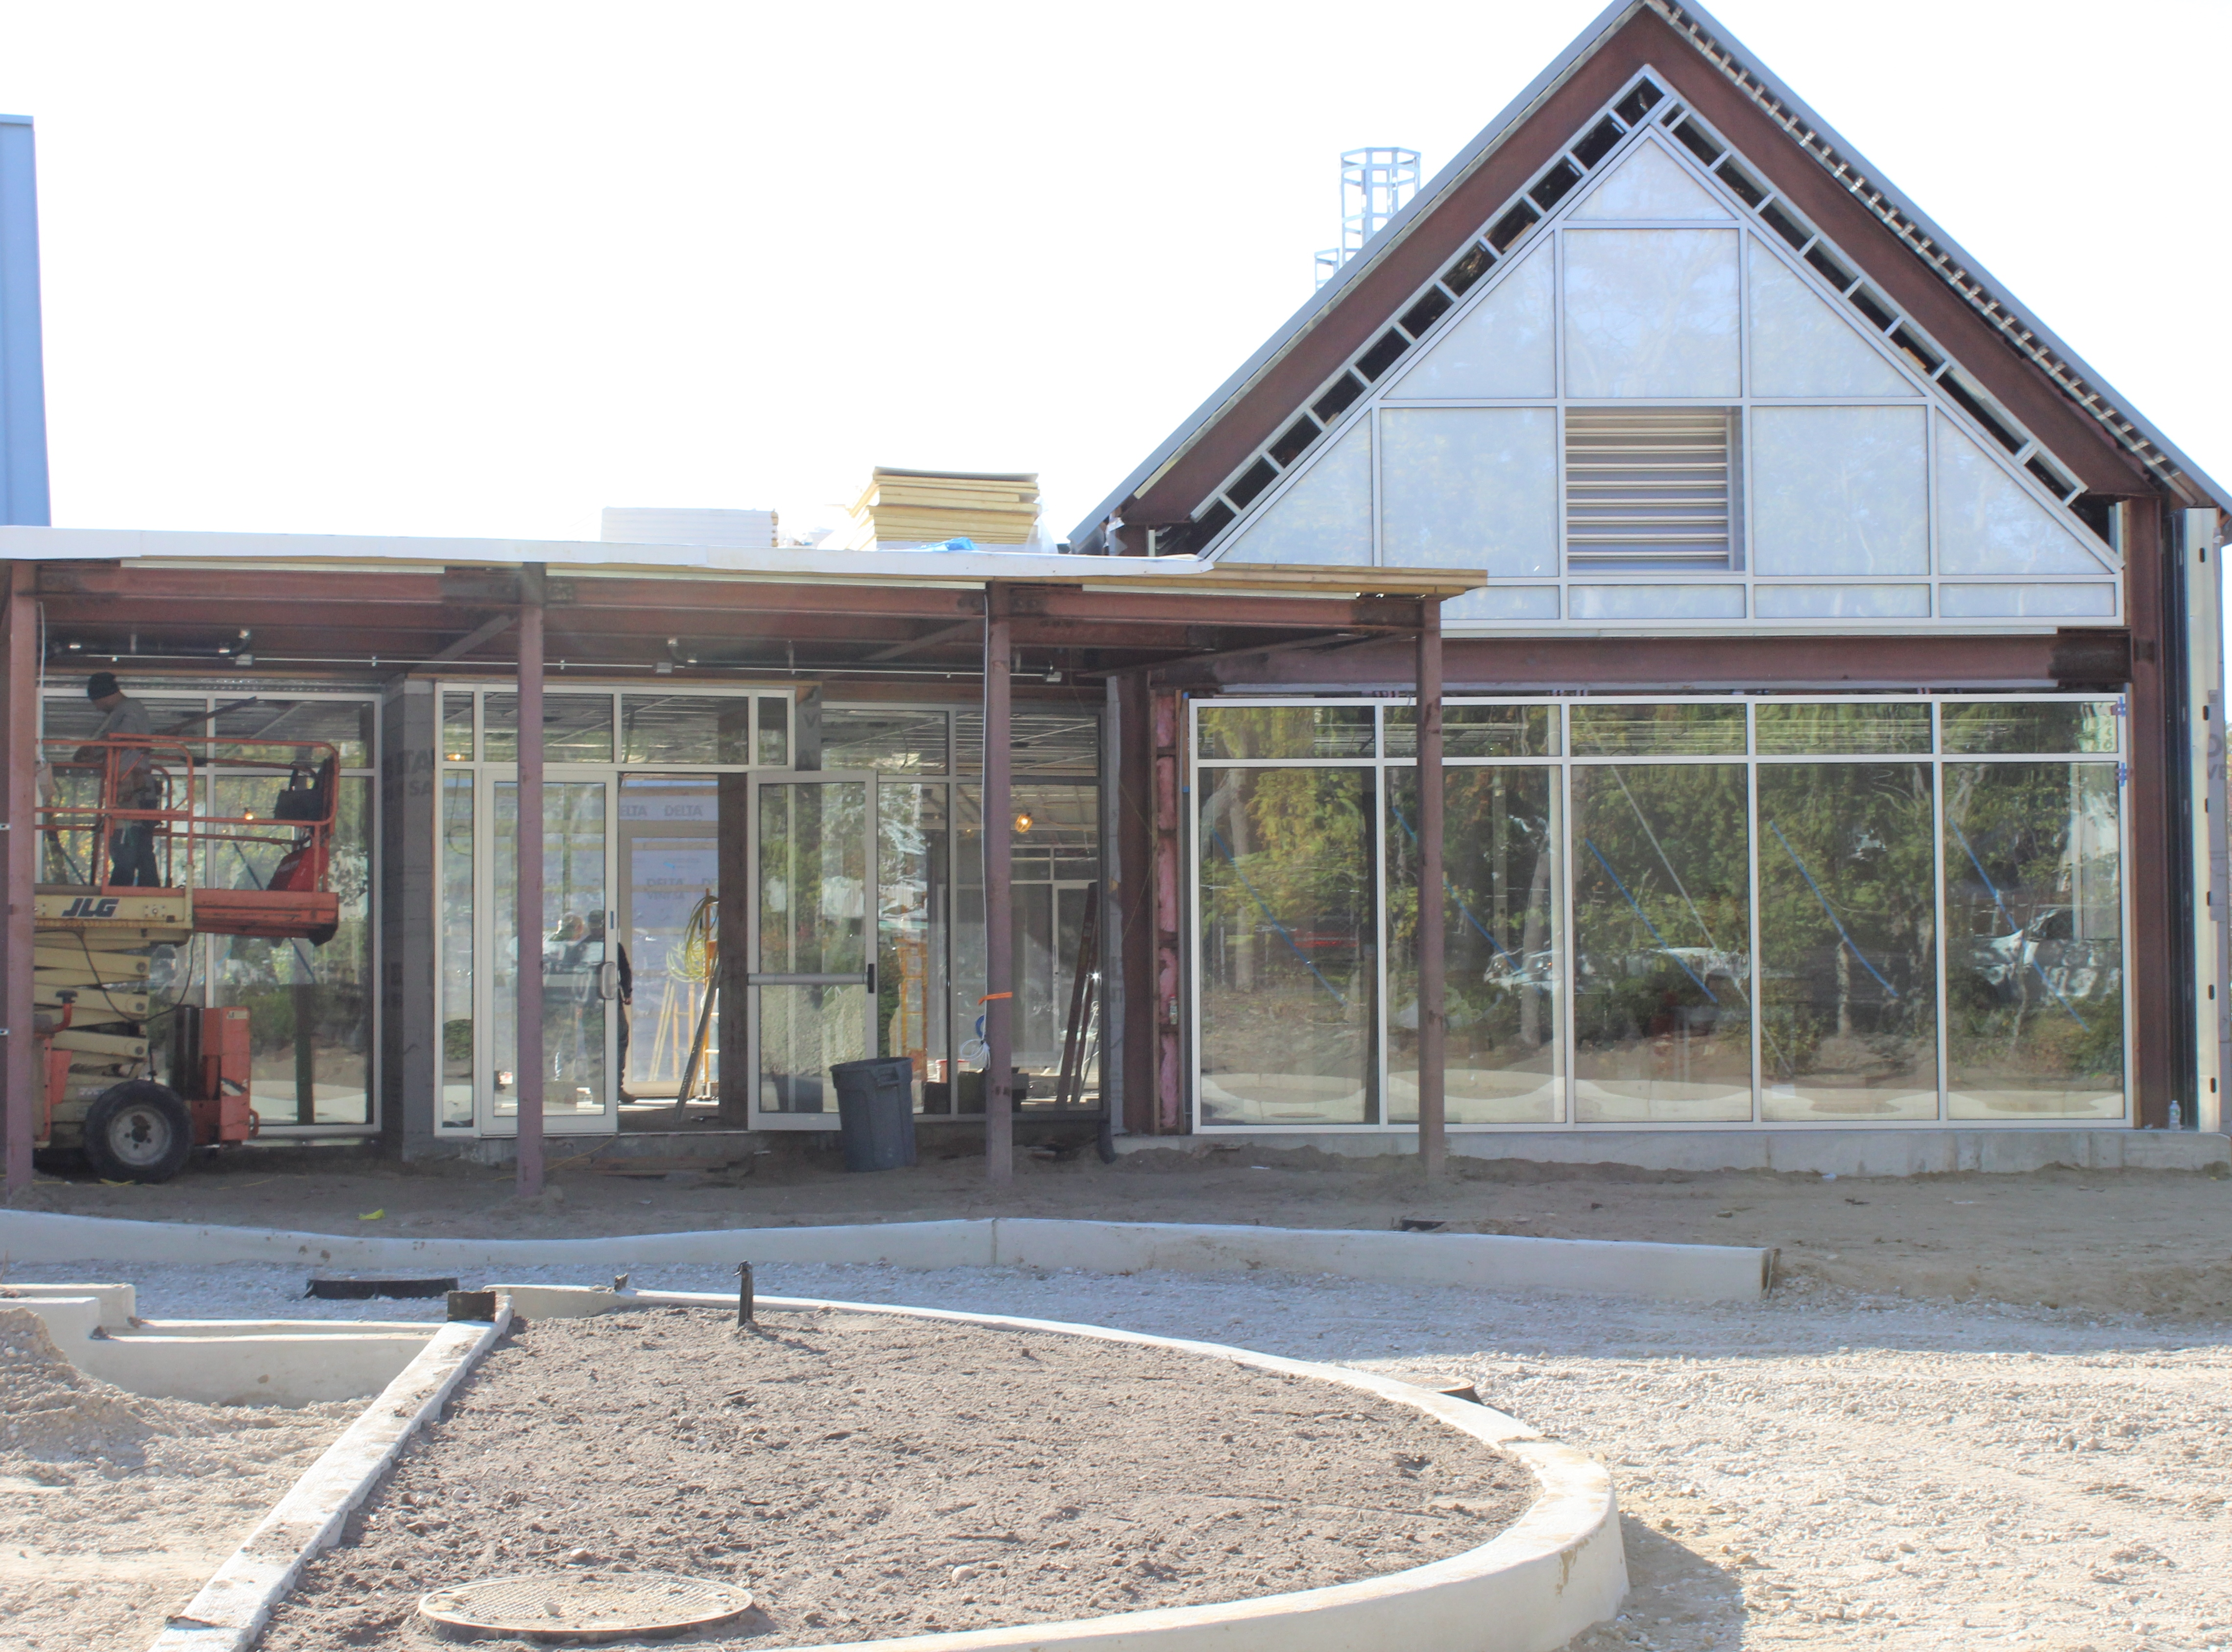 Glass installed at entrance